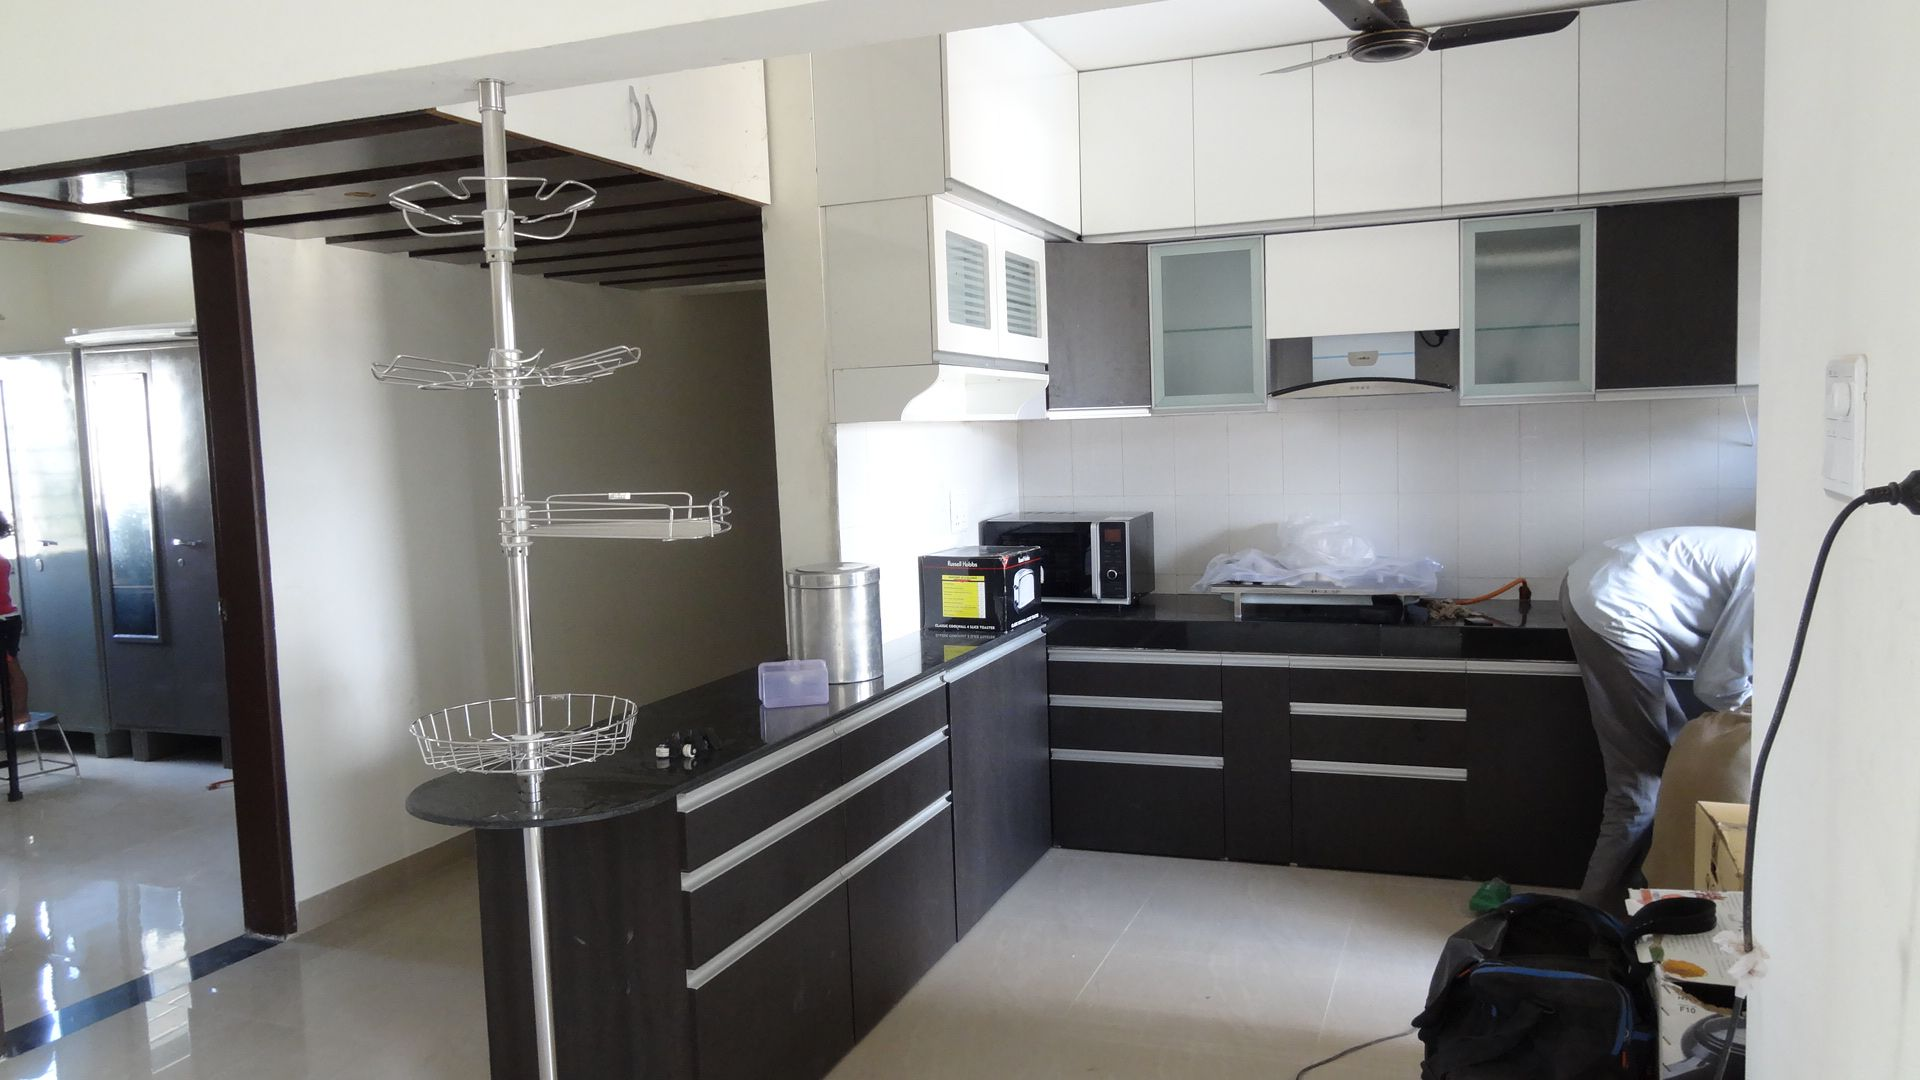 Modular Kitchen Furniture For Your All Kitchen Furniture Requirements In  Madurai At Affordable Price. Call Madurai Kitchens For Latest Products  Catalogue, ...